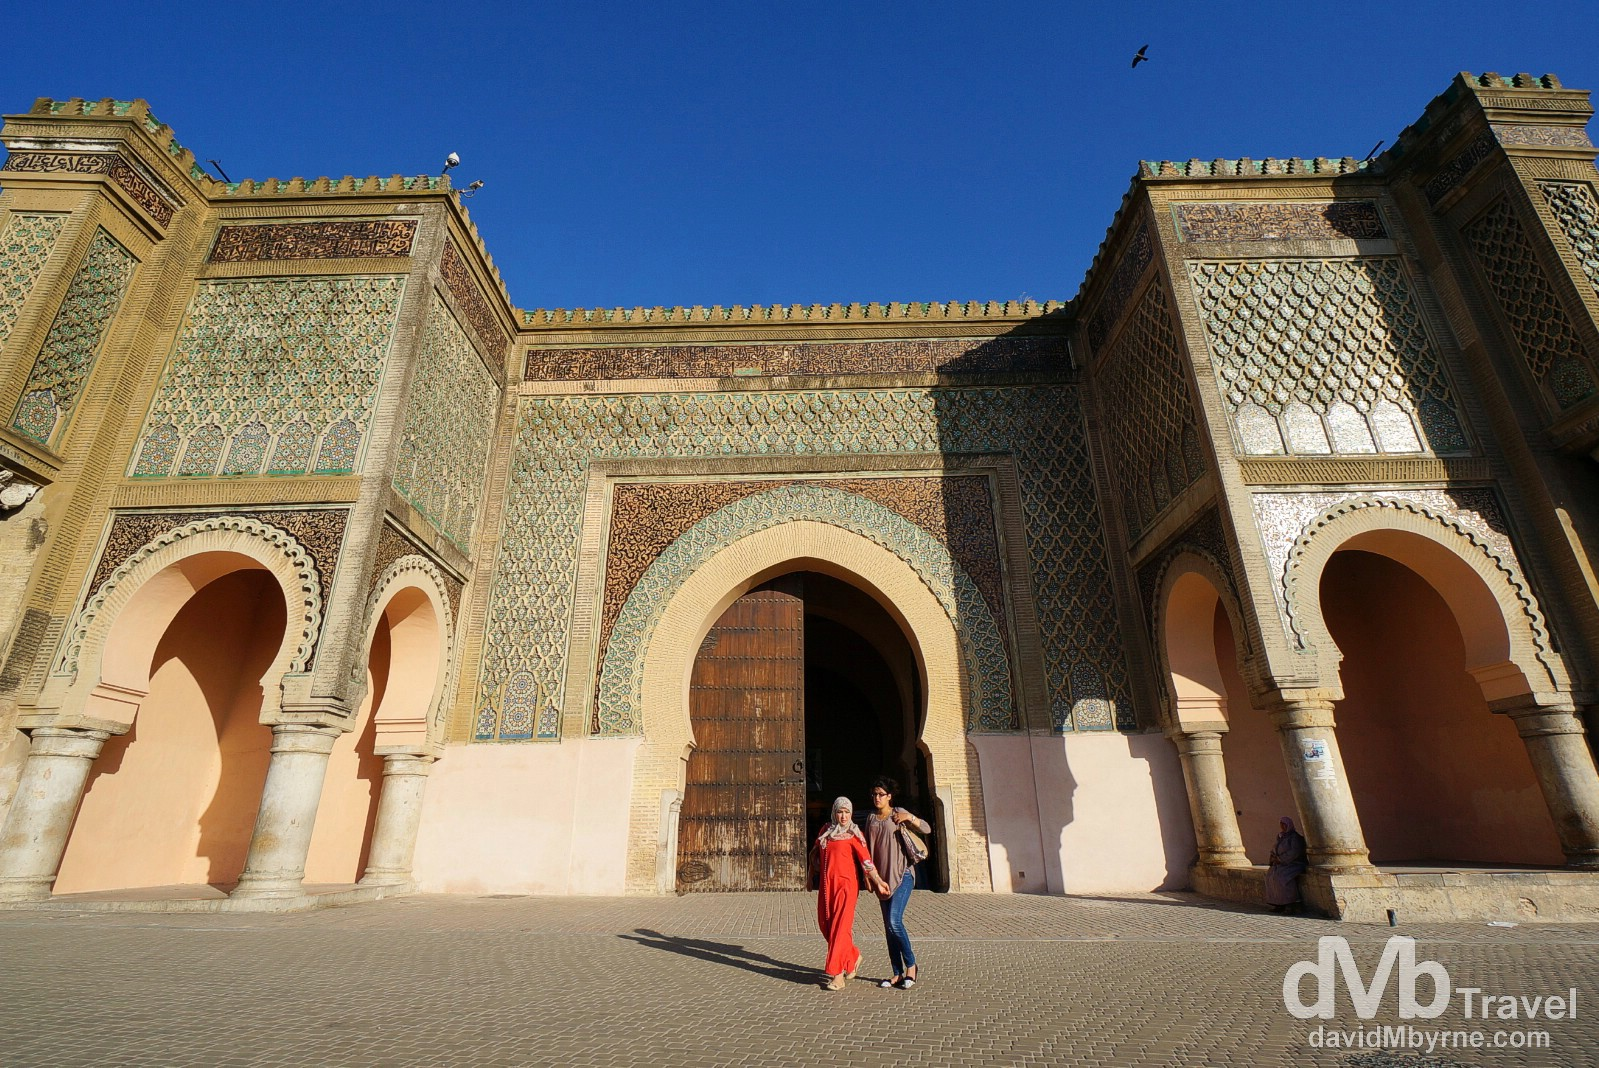 The gateway Bob Mansour in Meknes, Morocco. May 23rd, 2014.